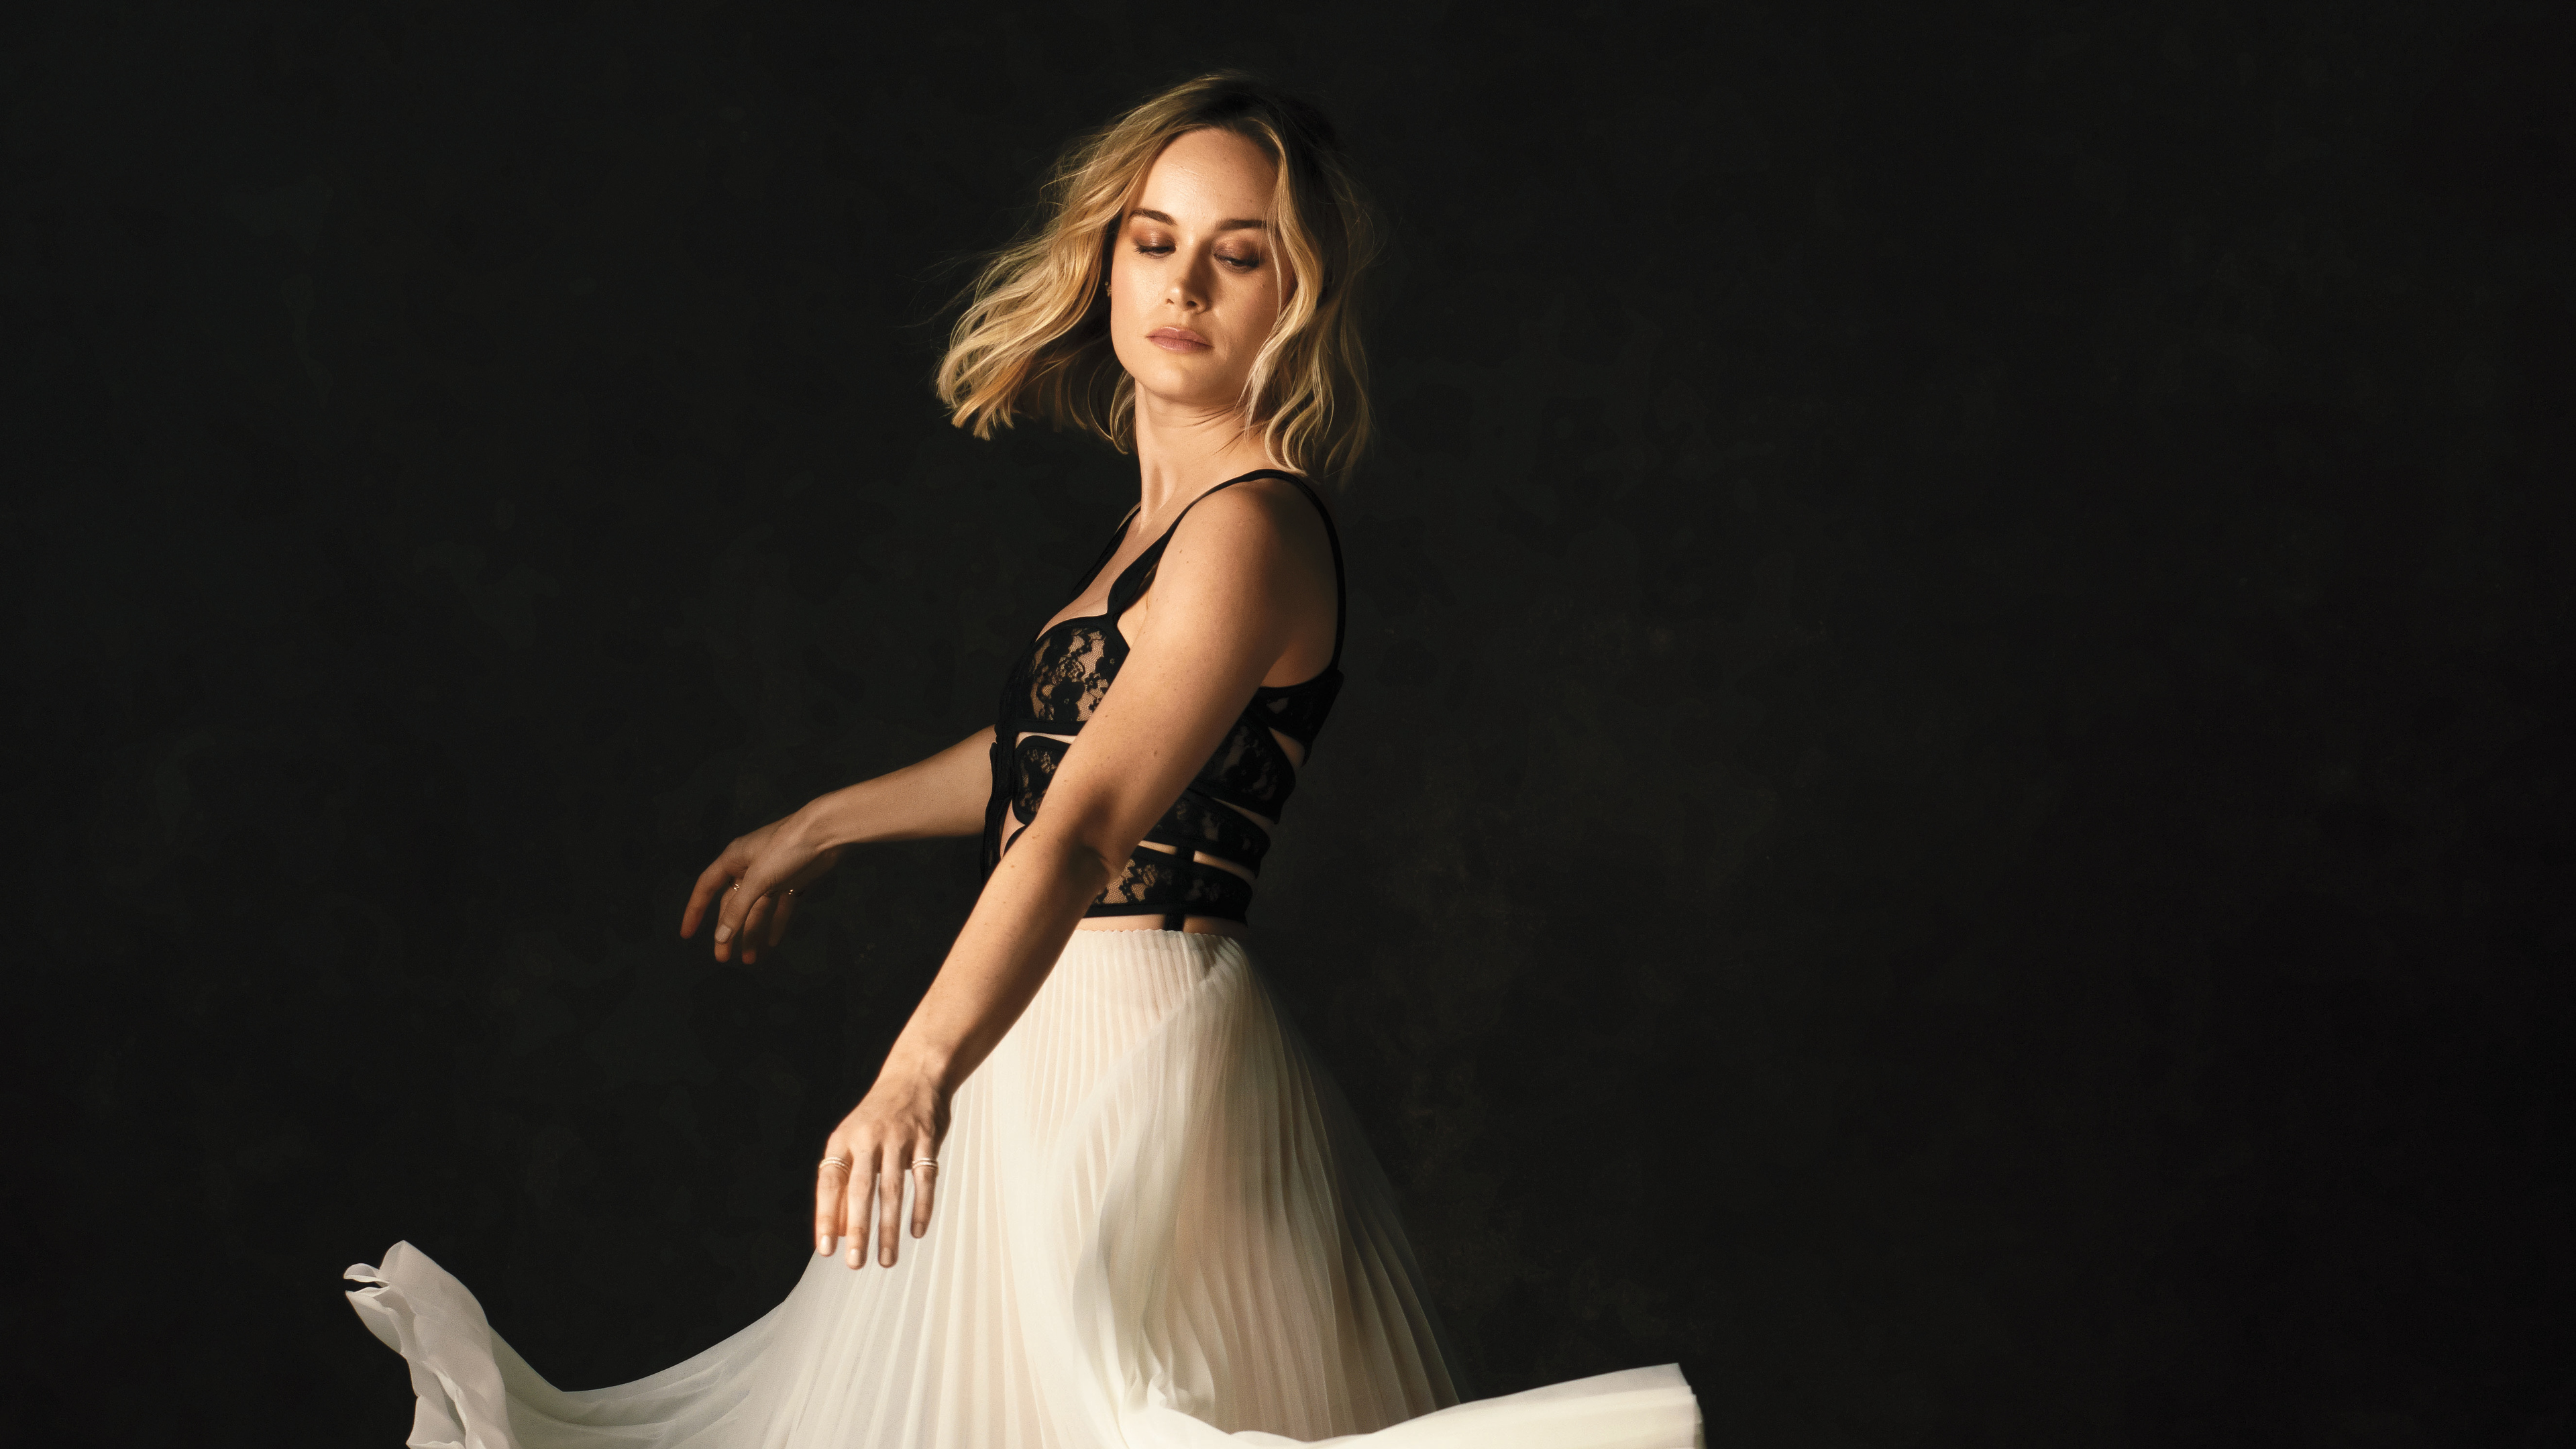 brie larson the hollywood reporter photoshoot 2019 4k 1553073379 - Brie Larson The Hollywood Reporter Photoshoot 2019 4k - photoshoot wallpapers, hd-wallpapers, girls wallpapers, celebrities wallpapers, brie larson wallpapers, 4k-wallpapers